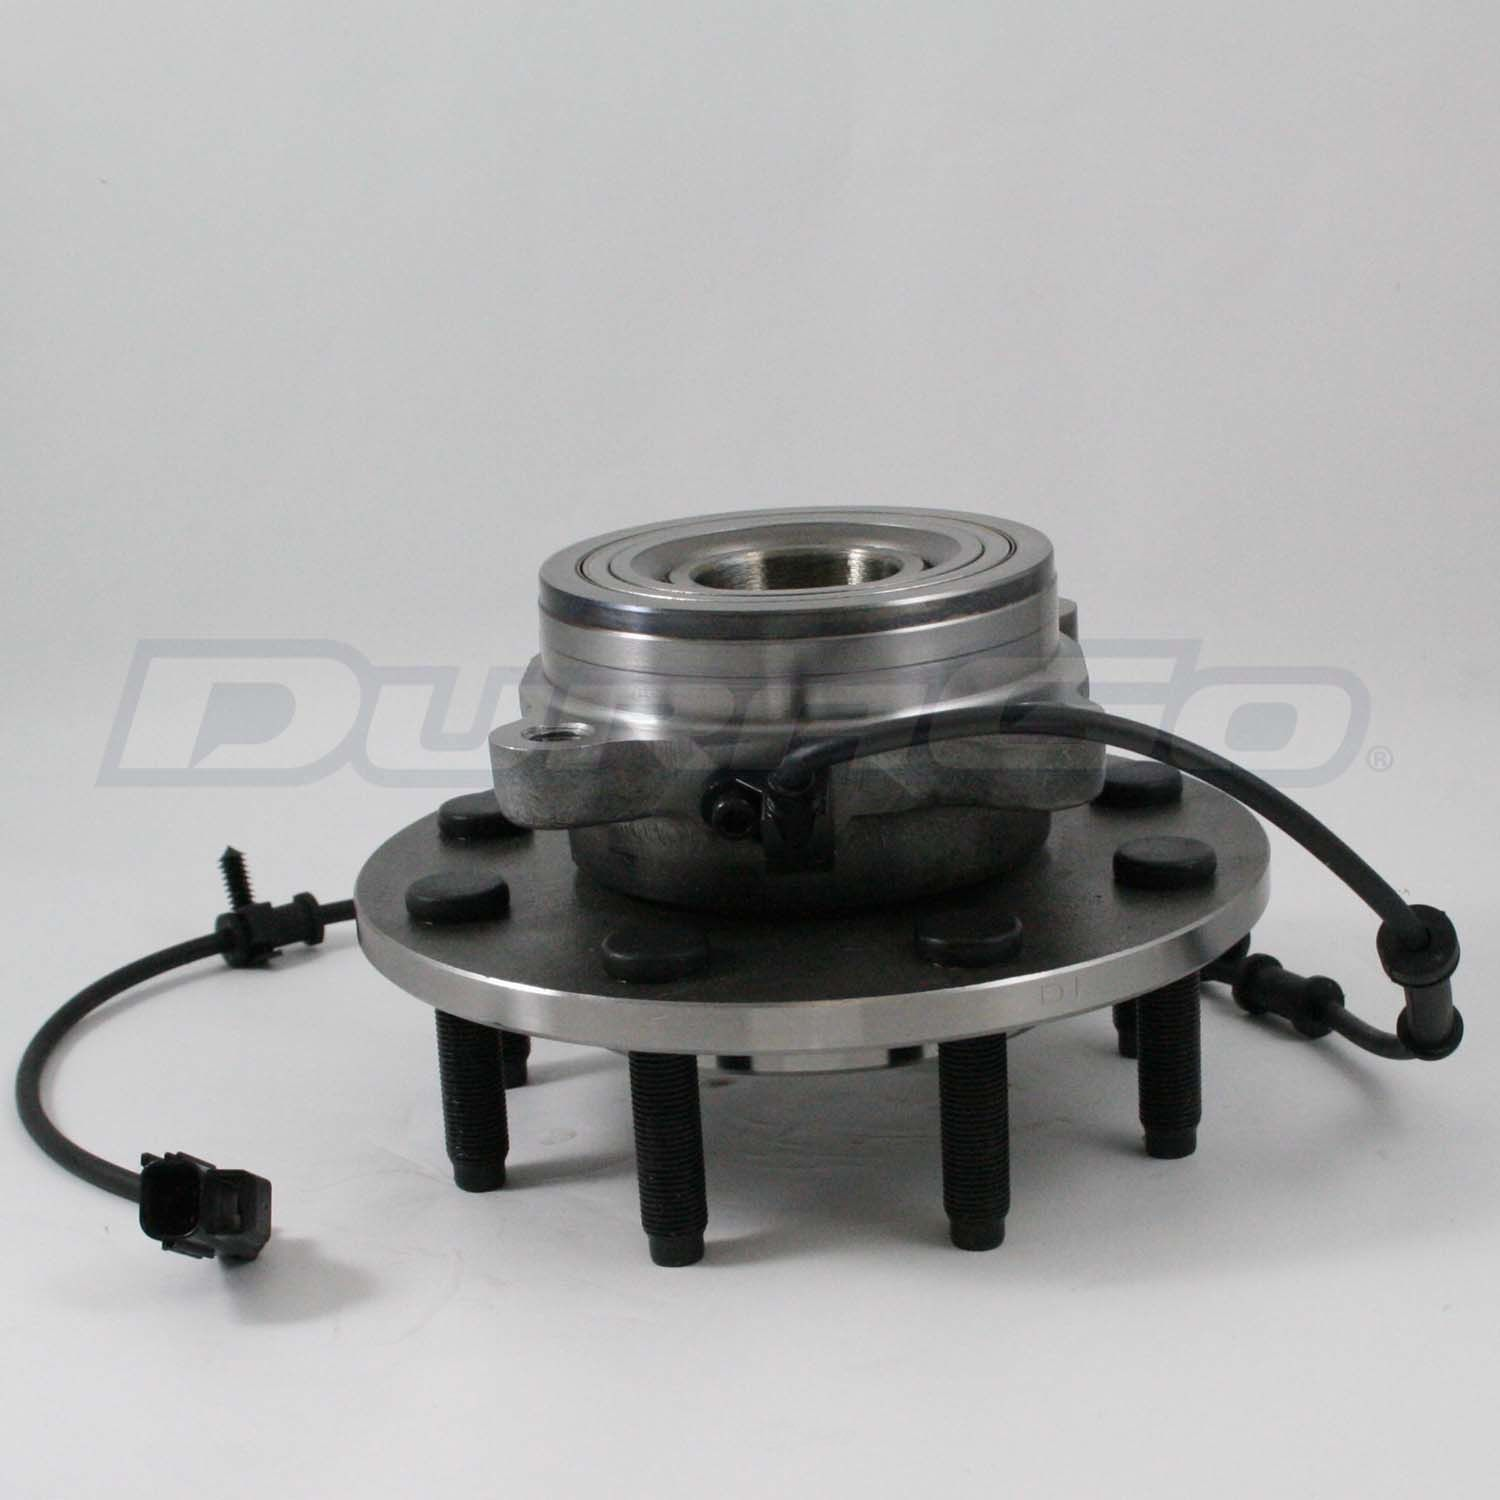 DURAGO - Axle Bearing and Hub Assembly - D48 295-15061